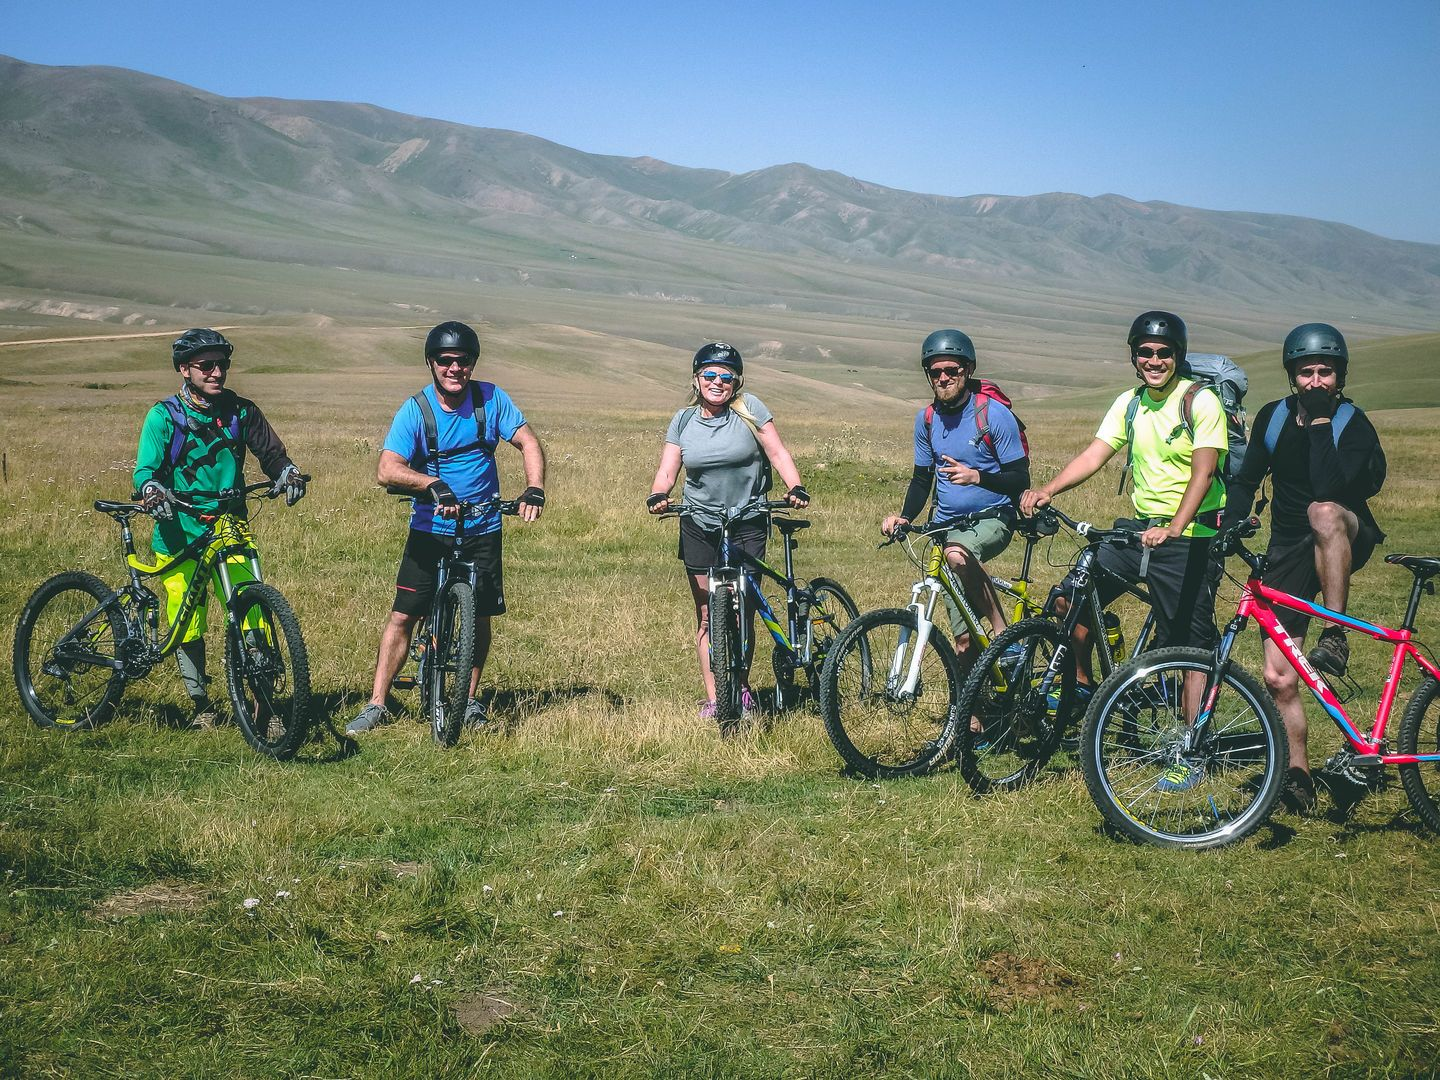 Kyrgyzstan Cycling Tourists Karkara Valley